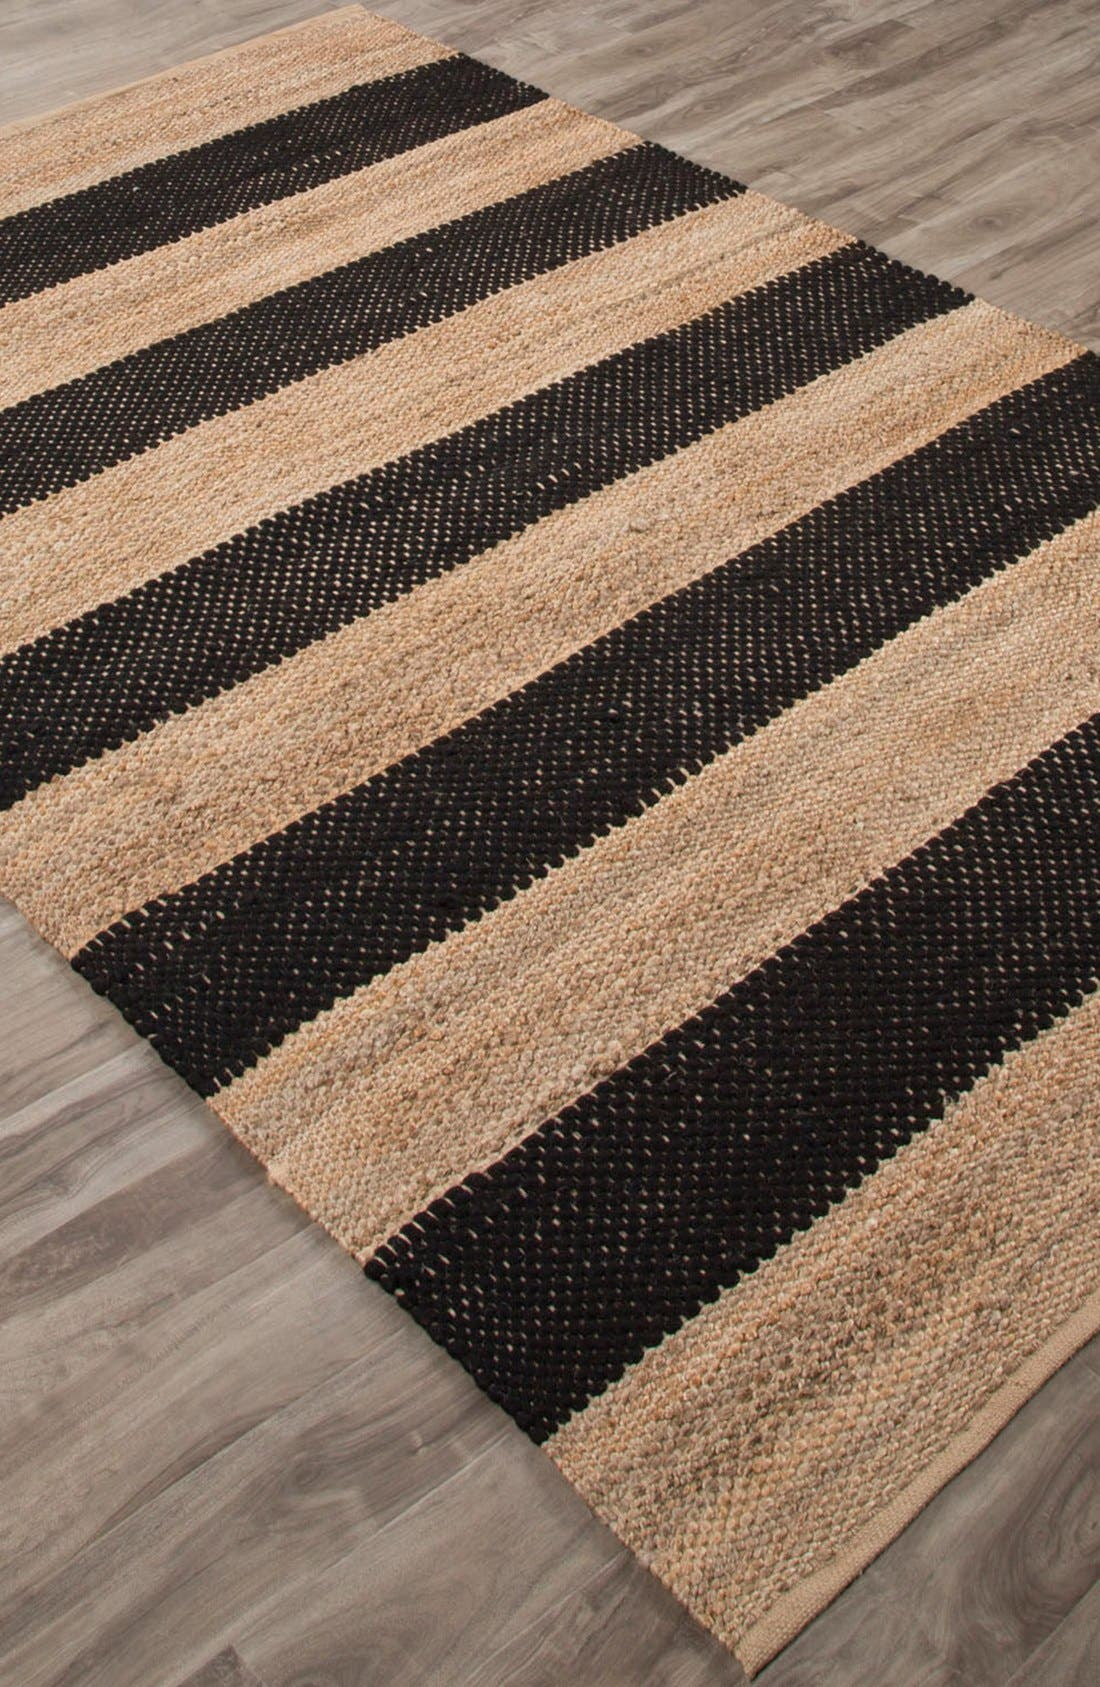 'nolita stripes' rug,                             Alternate thumbnail 2, color,                             001